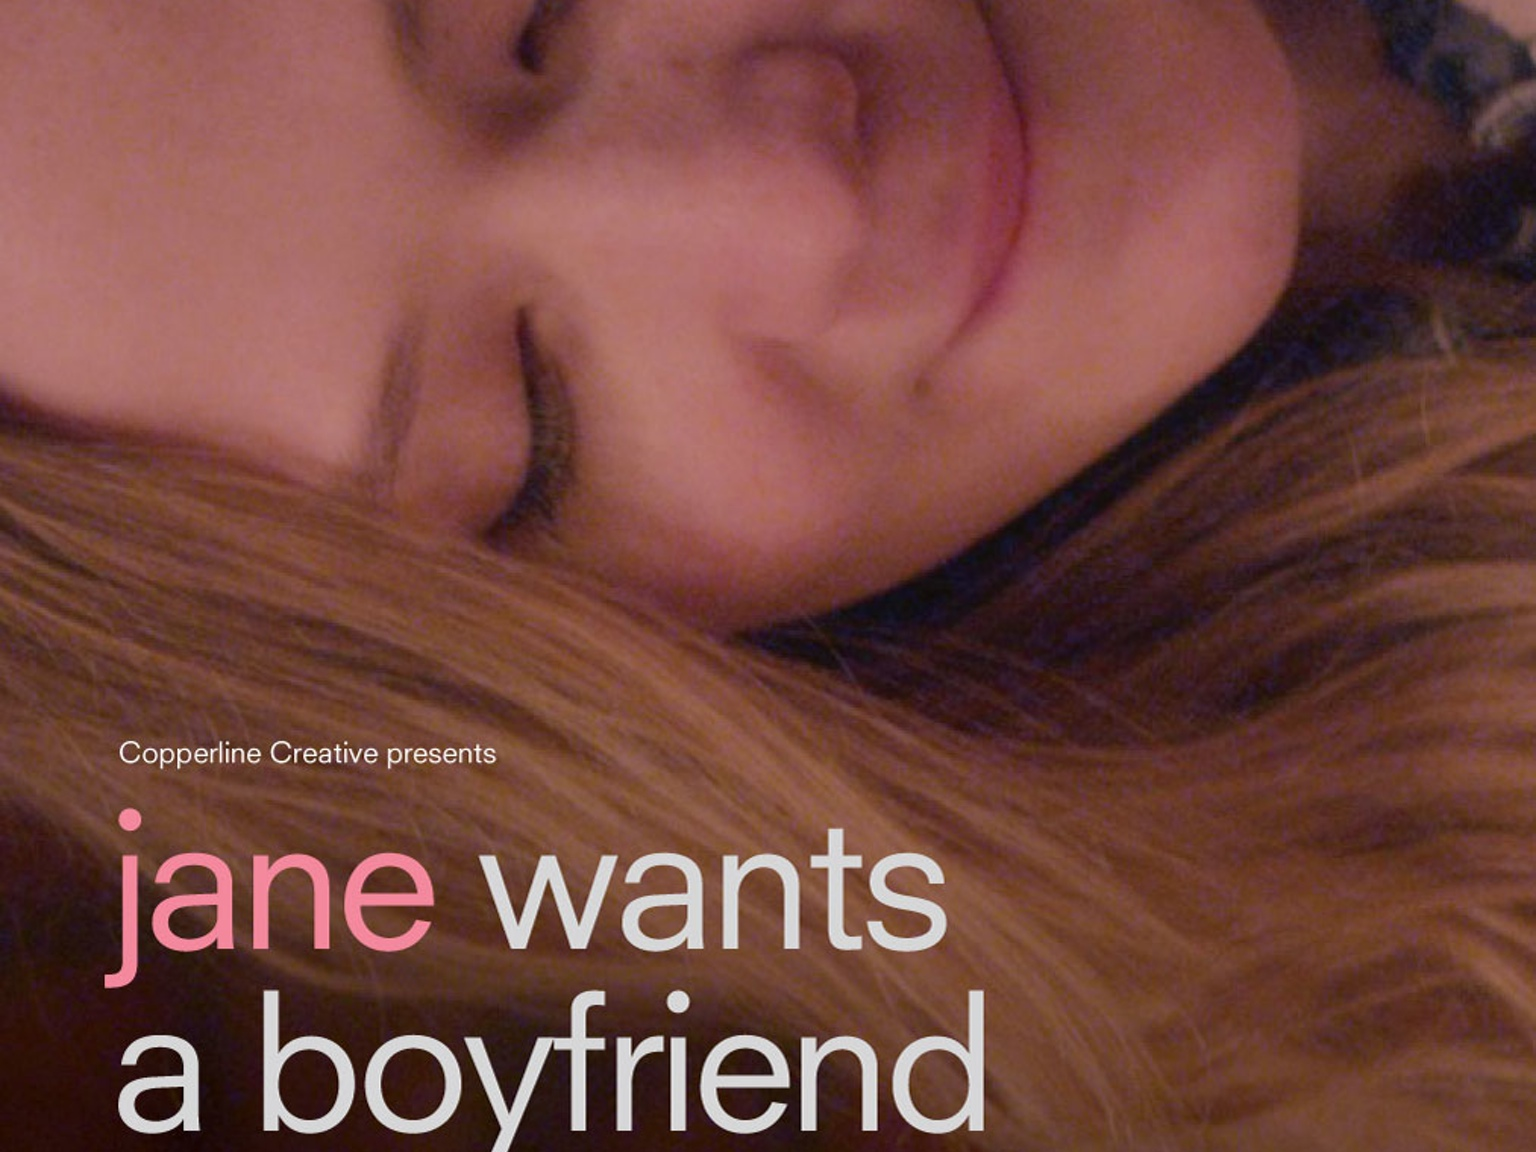 My Experience with Jane Wants A Boyfriend